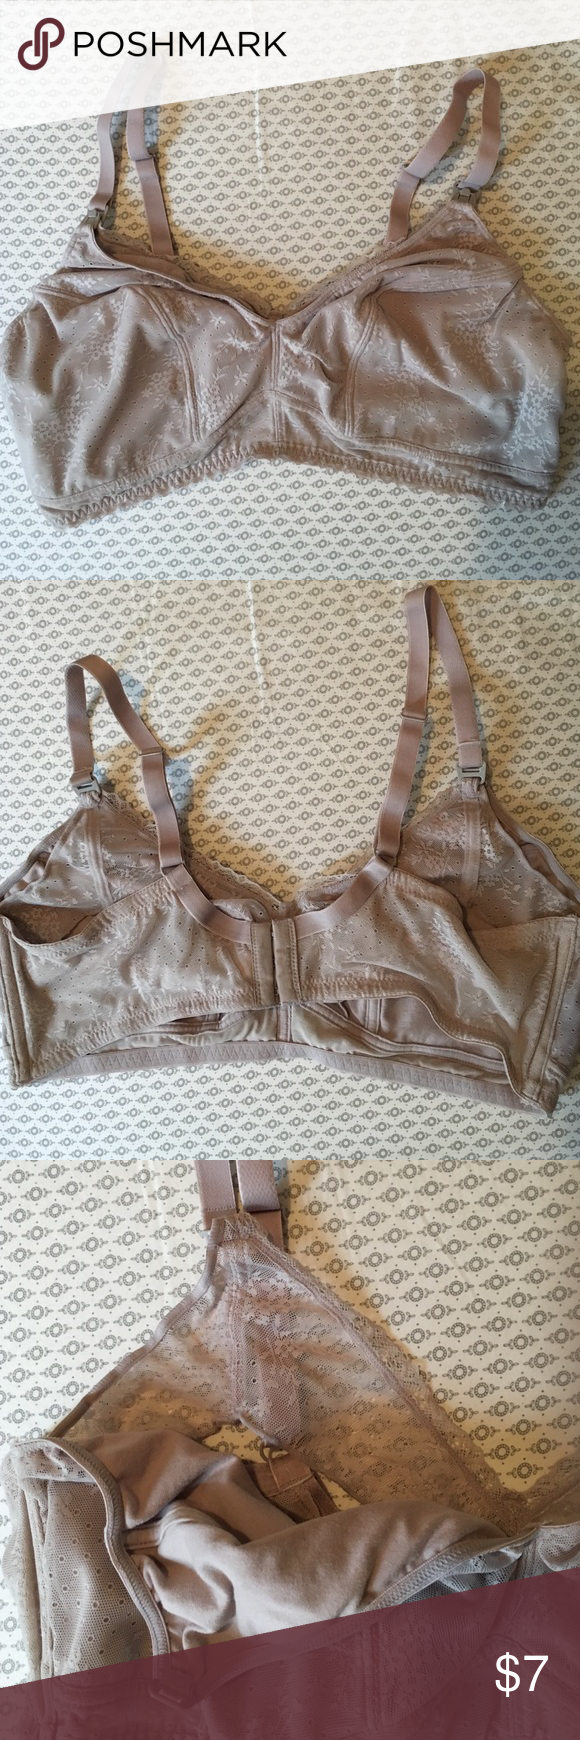 Gilligan&OMalley grey lace nursing bra SZ xl Beautiful grey lace nursing bra. Soft cotton, no wire, super comfortable and pretty lace design! Clip down for easy nursing. Size xl. This is a reposh because I bought the wrong size! I have one just like this in another size and it's my favorite! I'm a b cup normally and c cup now for size reference Gilligan & O'Malley Intimates & Sleepwear Bras